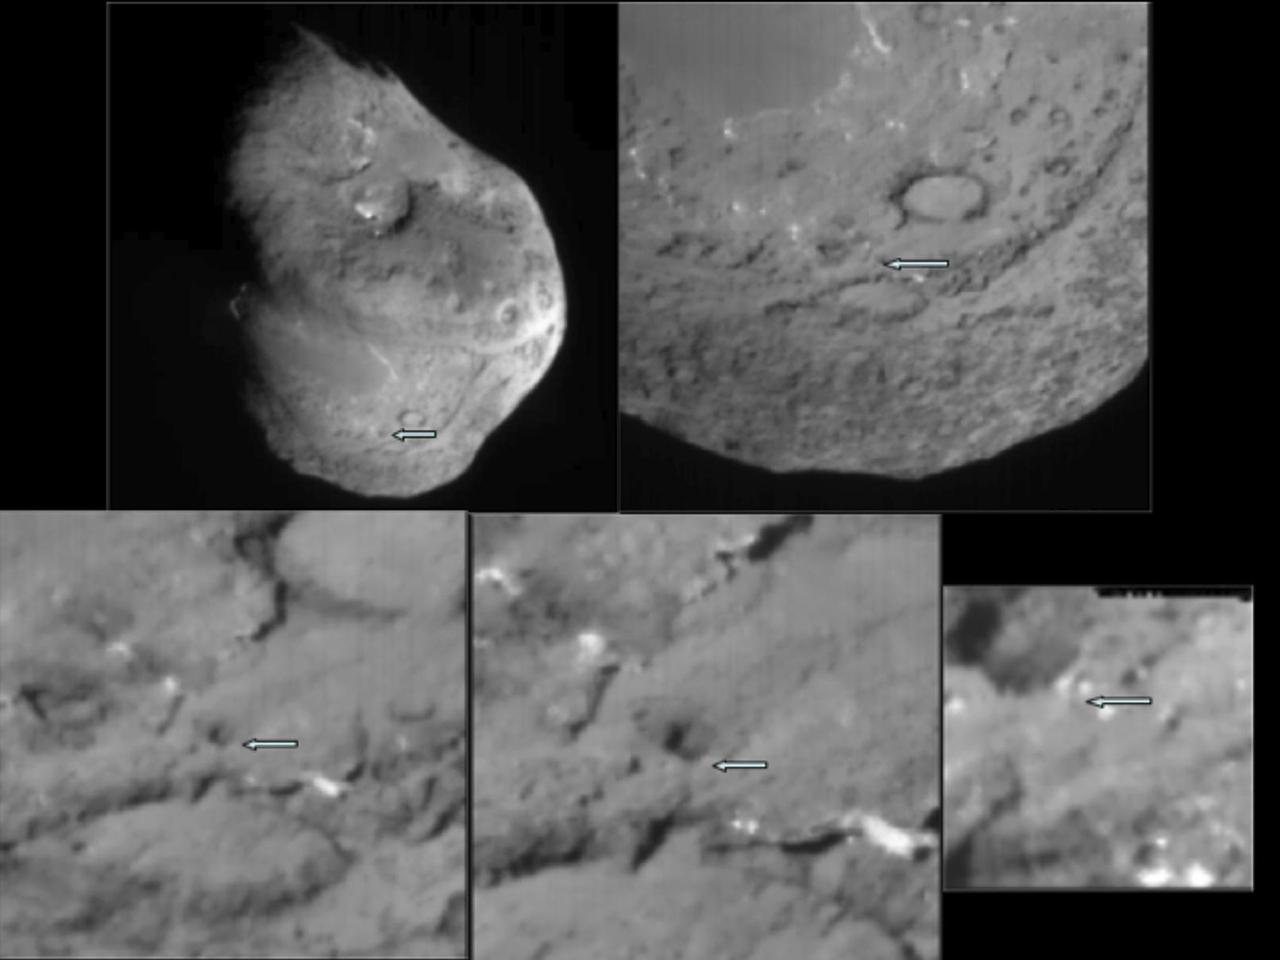 A series of images showing the area where NASA's Deep Impact probe collided with the surface of comet Tempel 1 in 2005 (Credit: NASA)